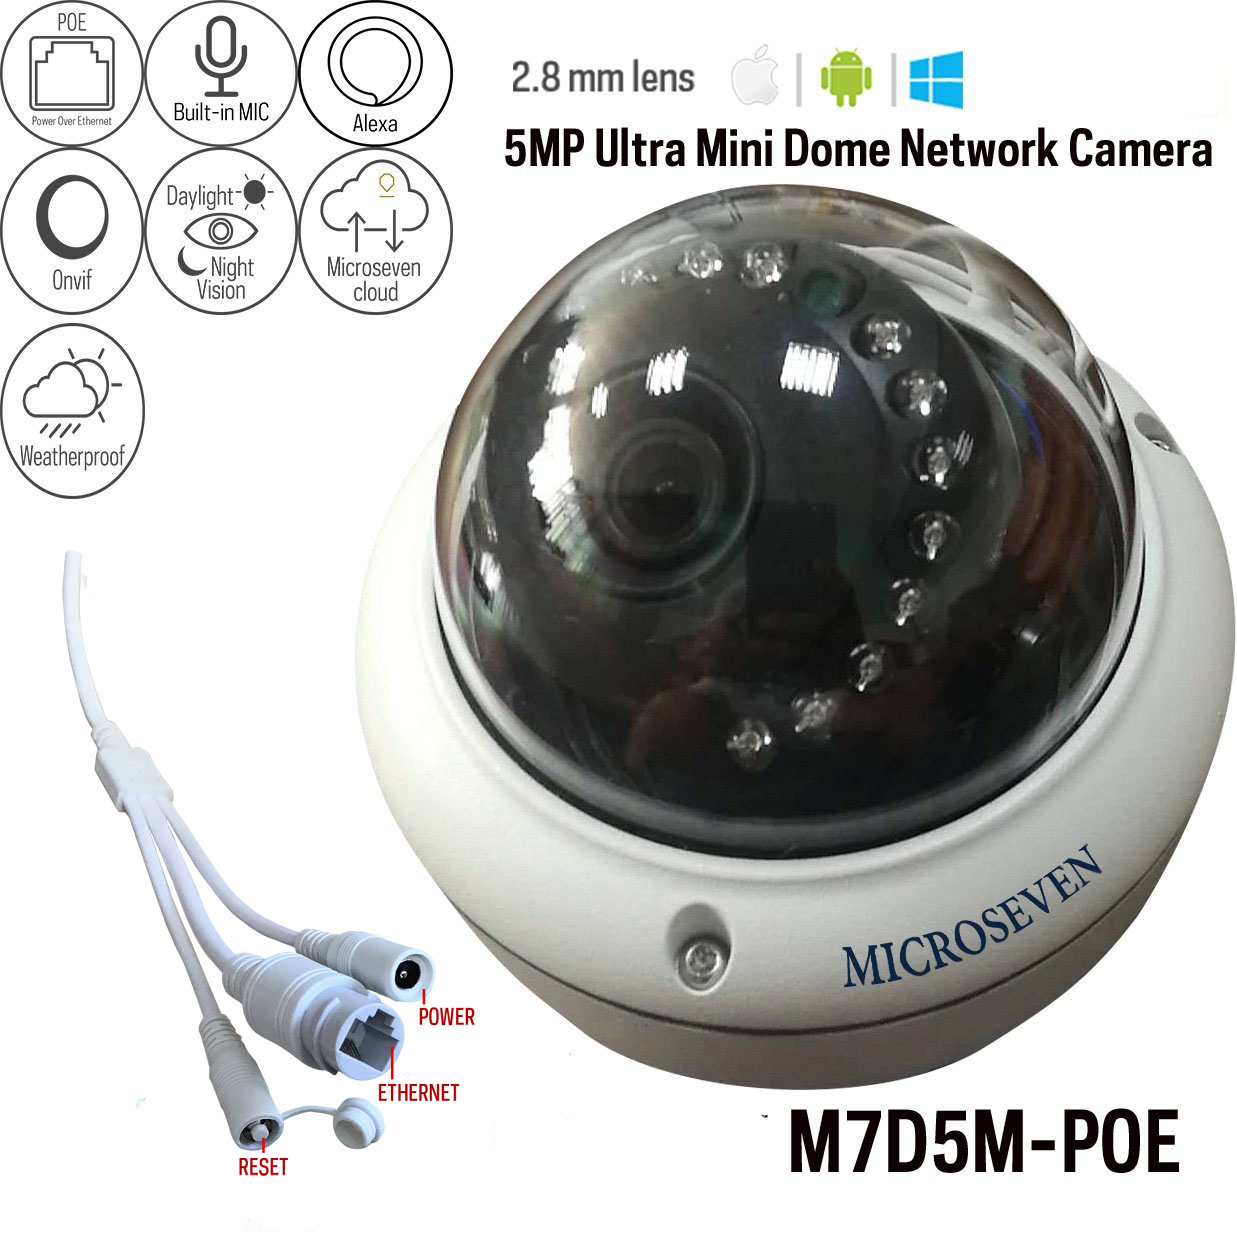 Microseven 5MP POE IP Camera Works with Alexa, Free 24Hr Cloud, Ultra HD 2592x1944 Audio with Build-in Microphone Day & Night Outdoor Dome Vandal-Proof IP Camera IP66, 100ft IR Distance, Free Live Streaming microseven.tv (in stock 5/30 pre-order only)